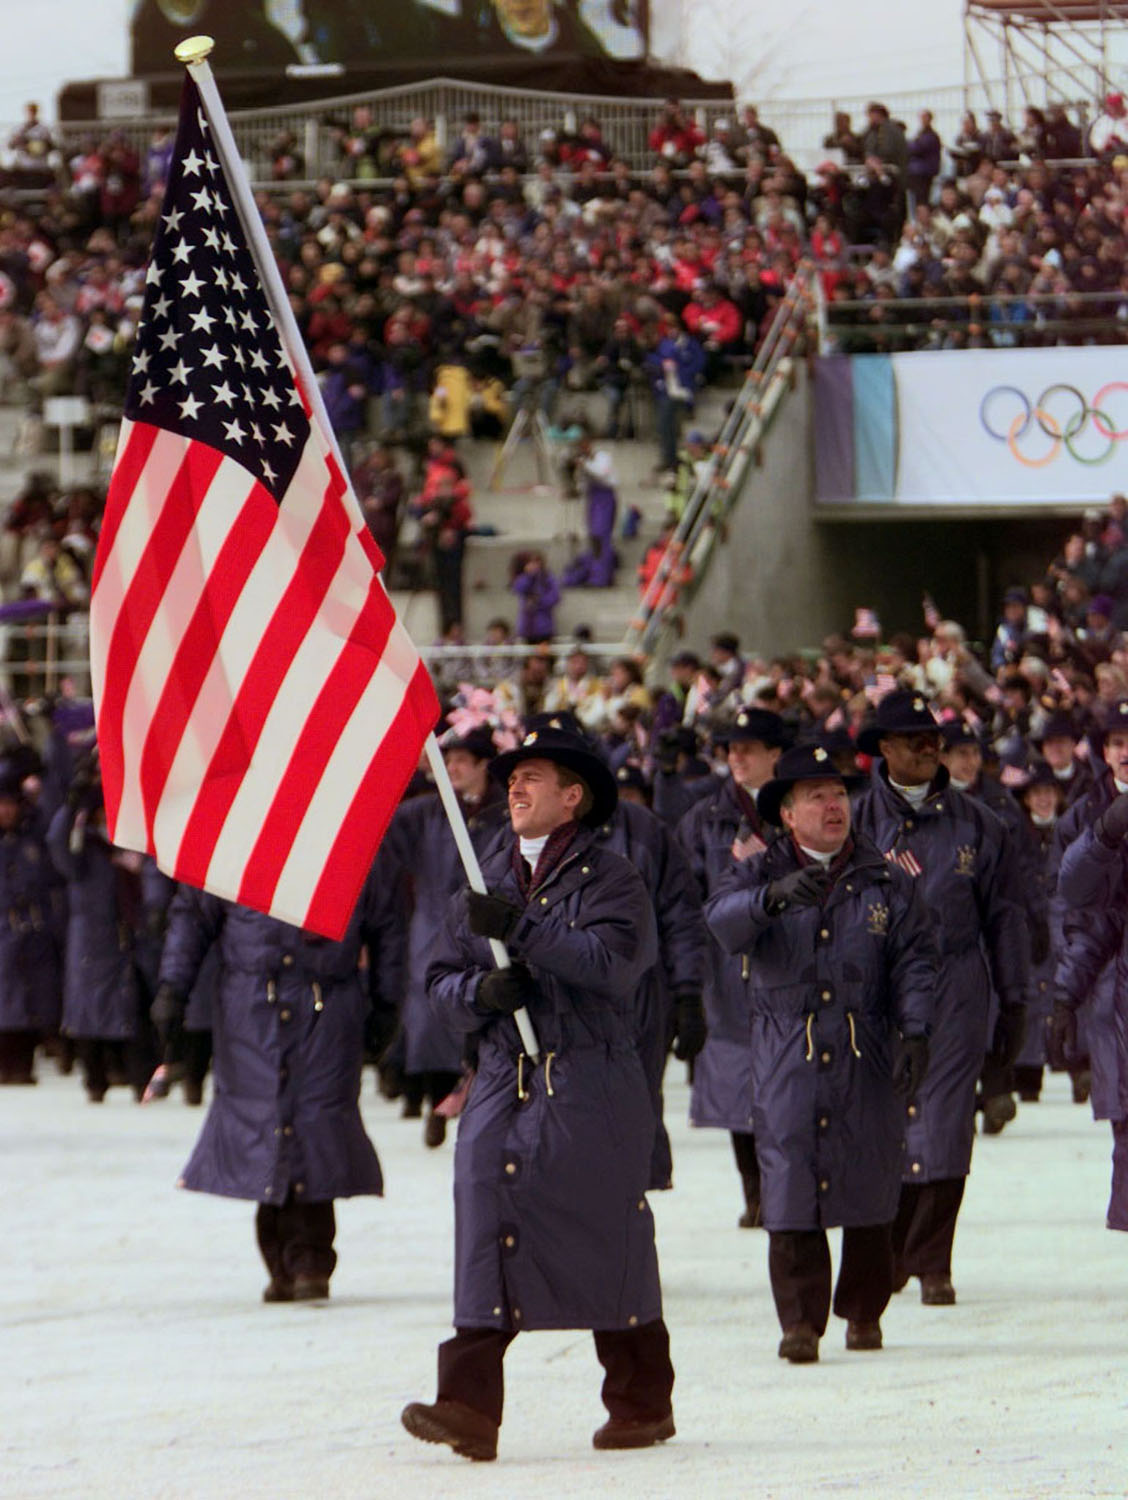 Four-time Olympic speed skater Eric Flaim carries the United States flag into the Olympic Stadium in Nagano, Japan, as he leads his team into the 1998 Winter Olympic Games opening ceremony.